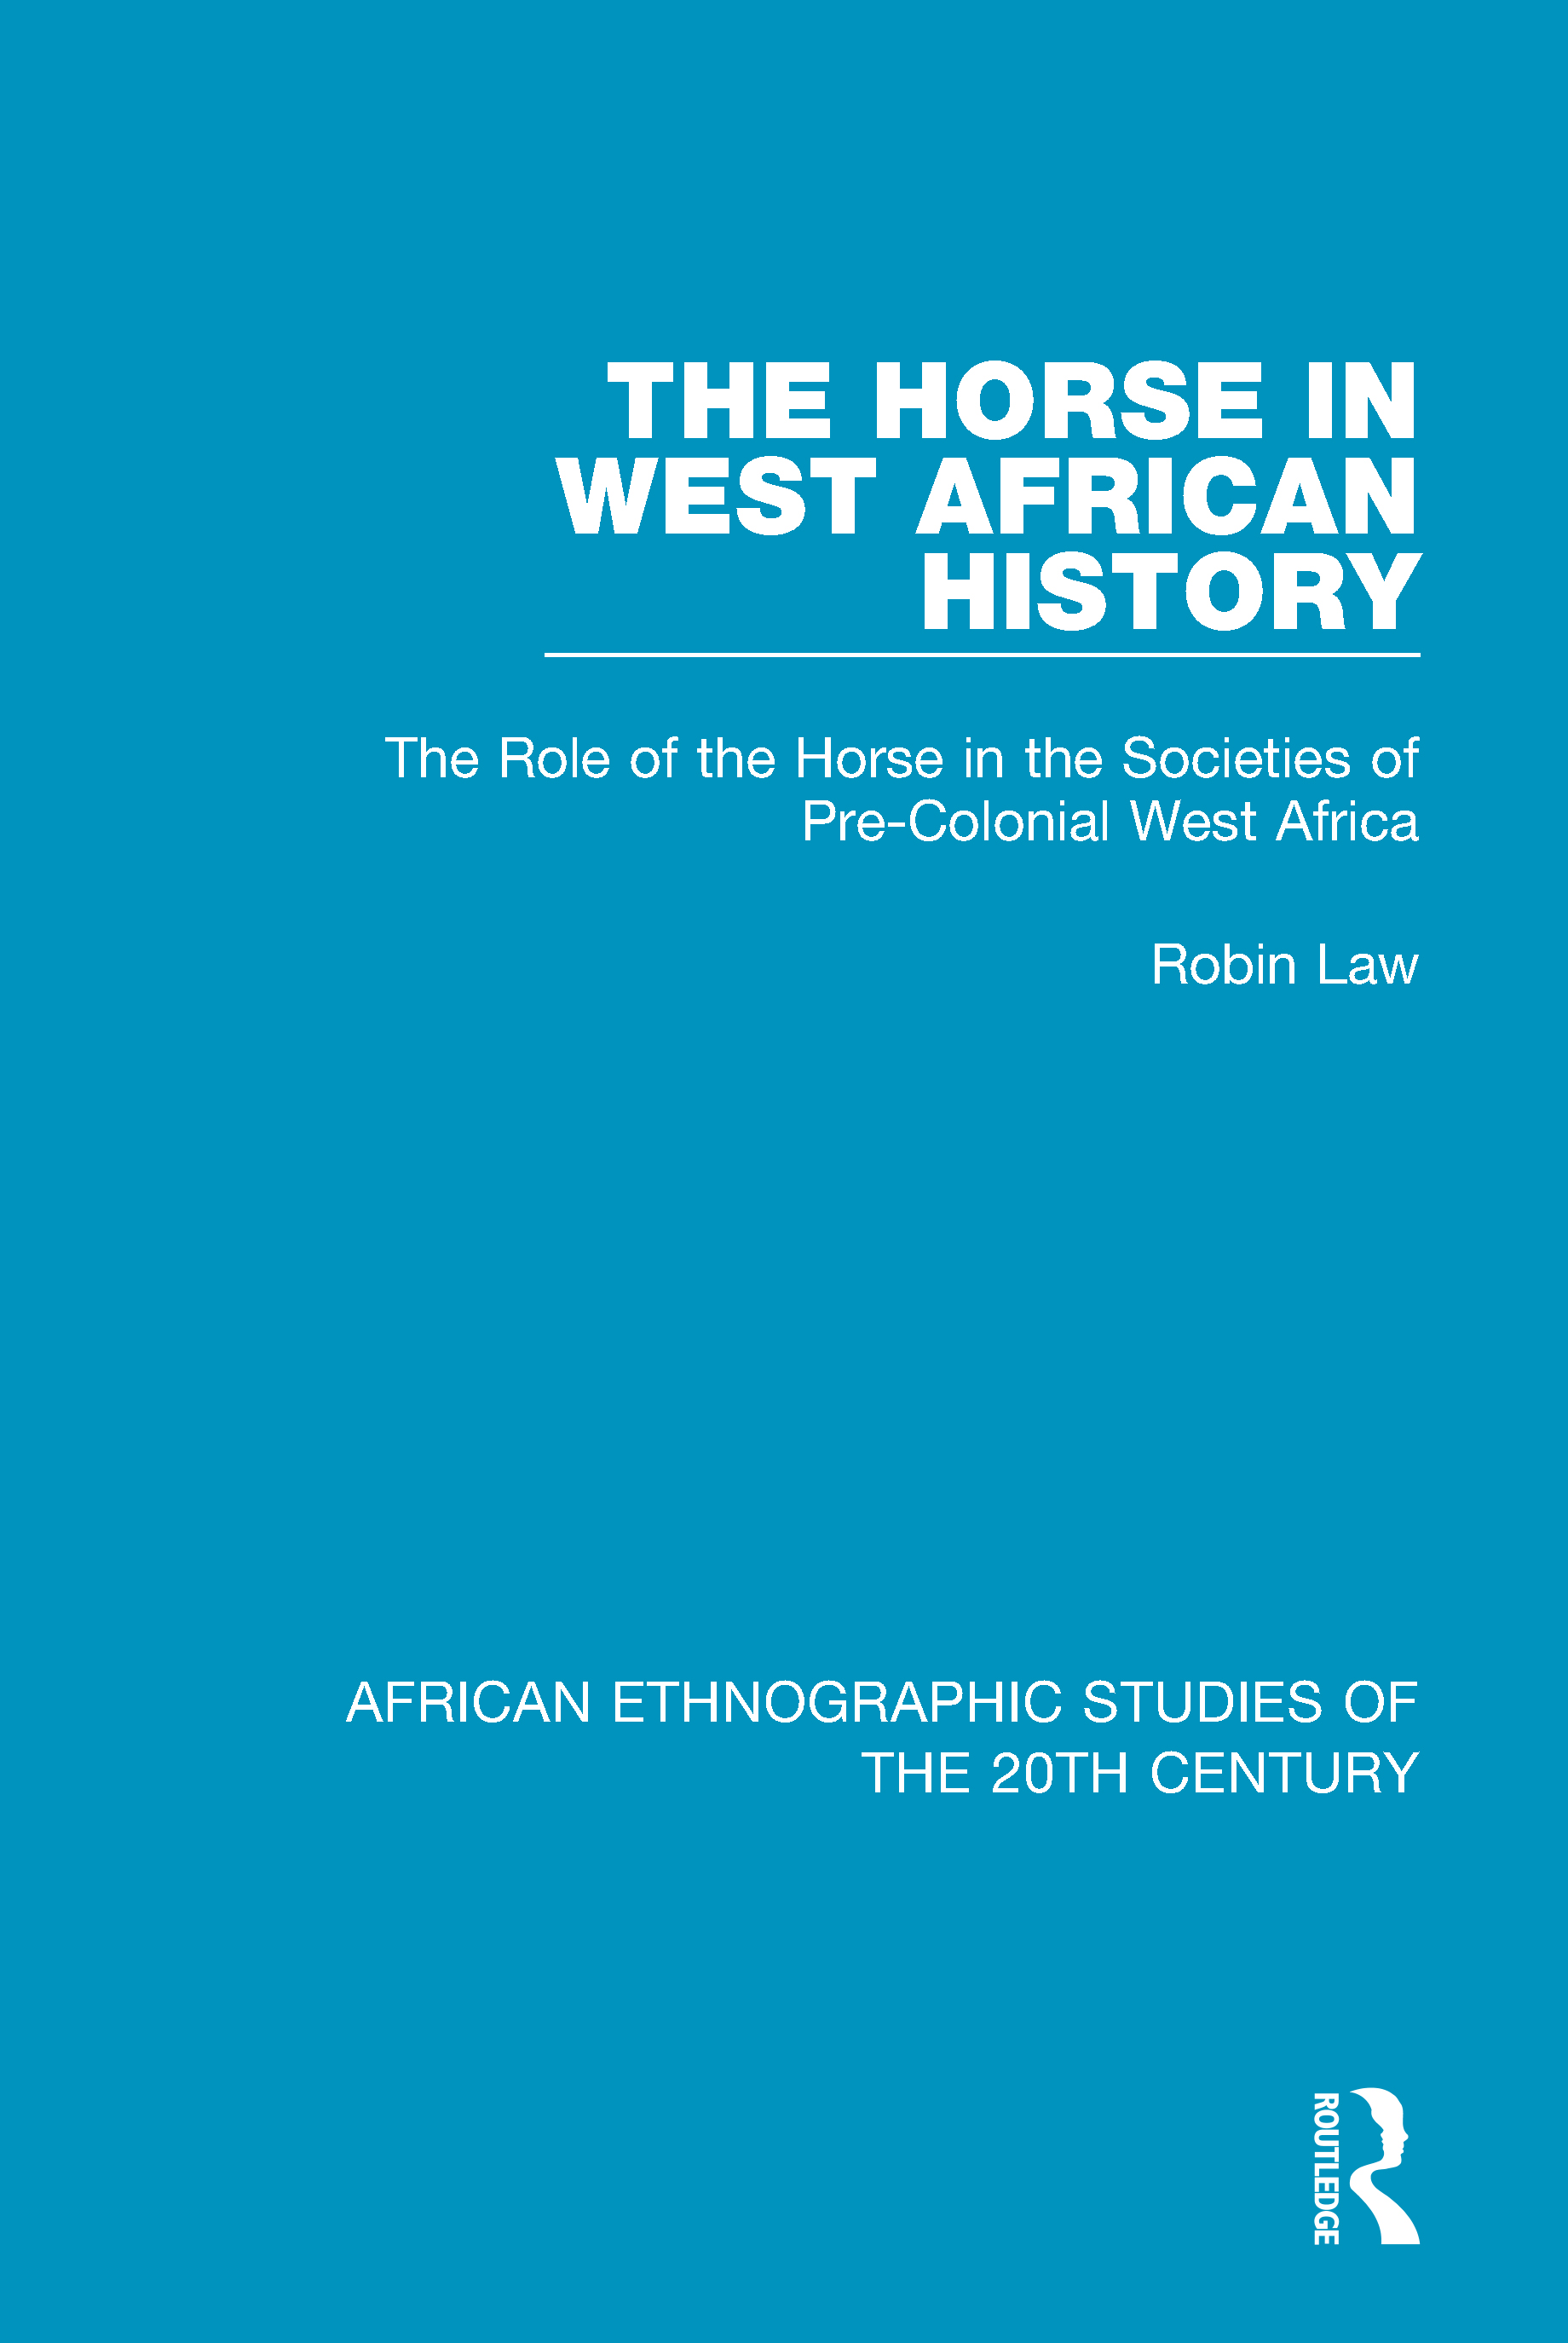 The Horse in West African History: The Role of the Horse in the Societies of Pre-Colonial West Africa book cover